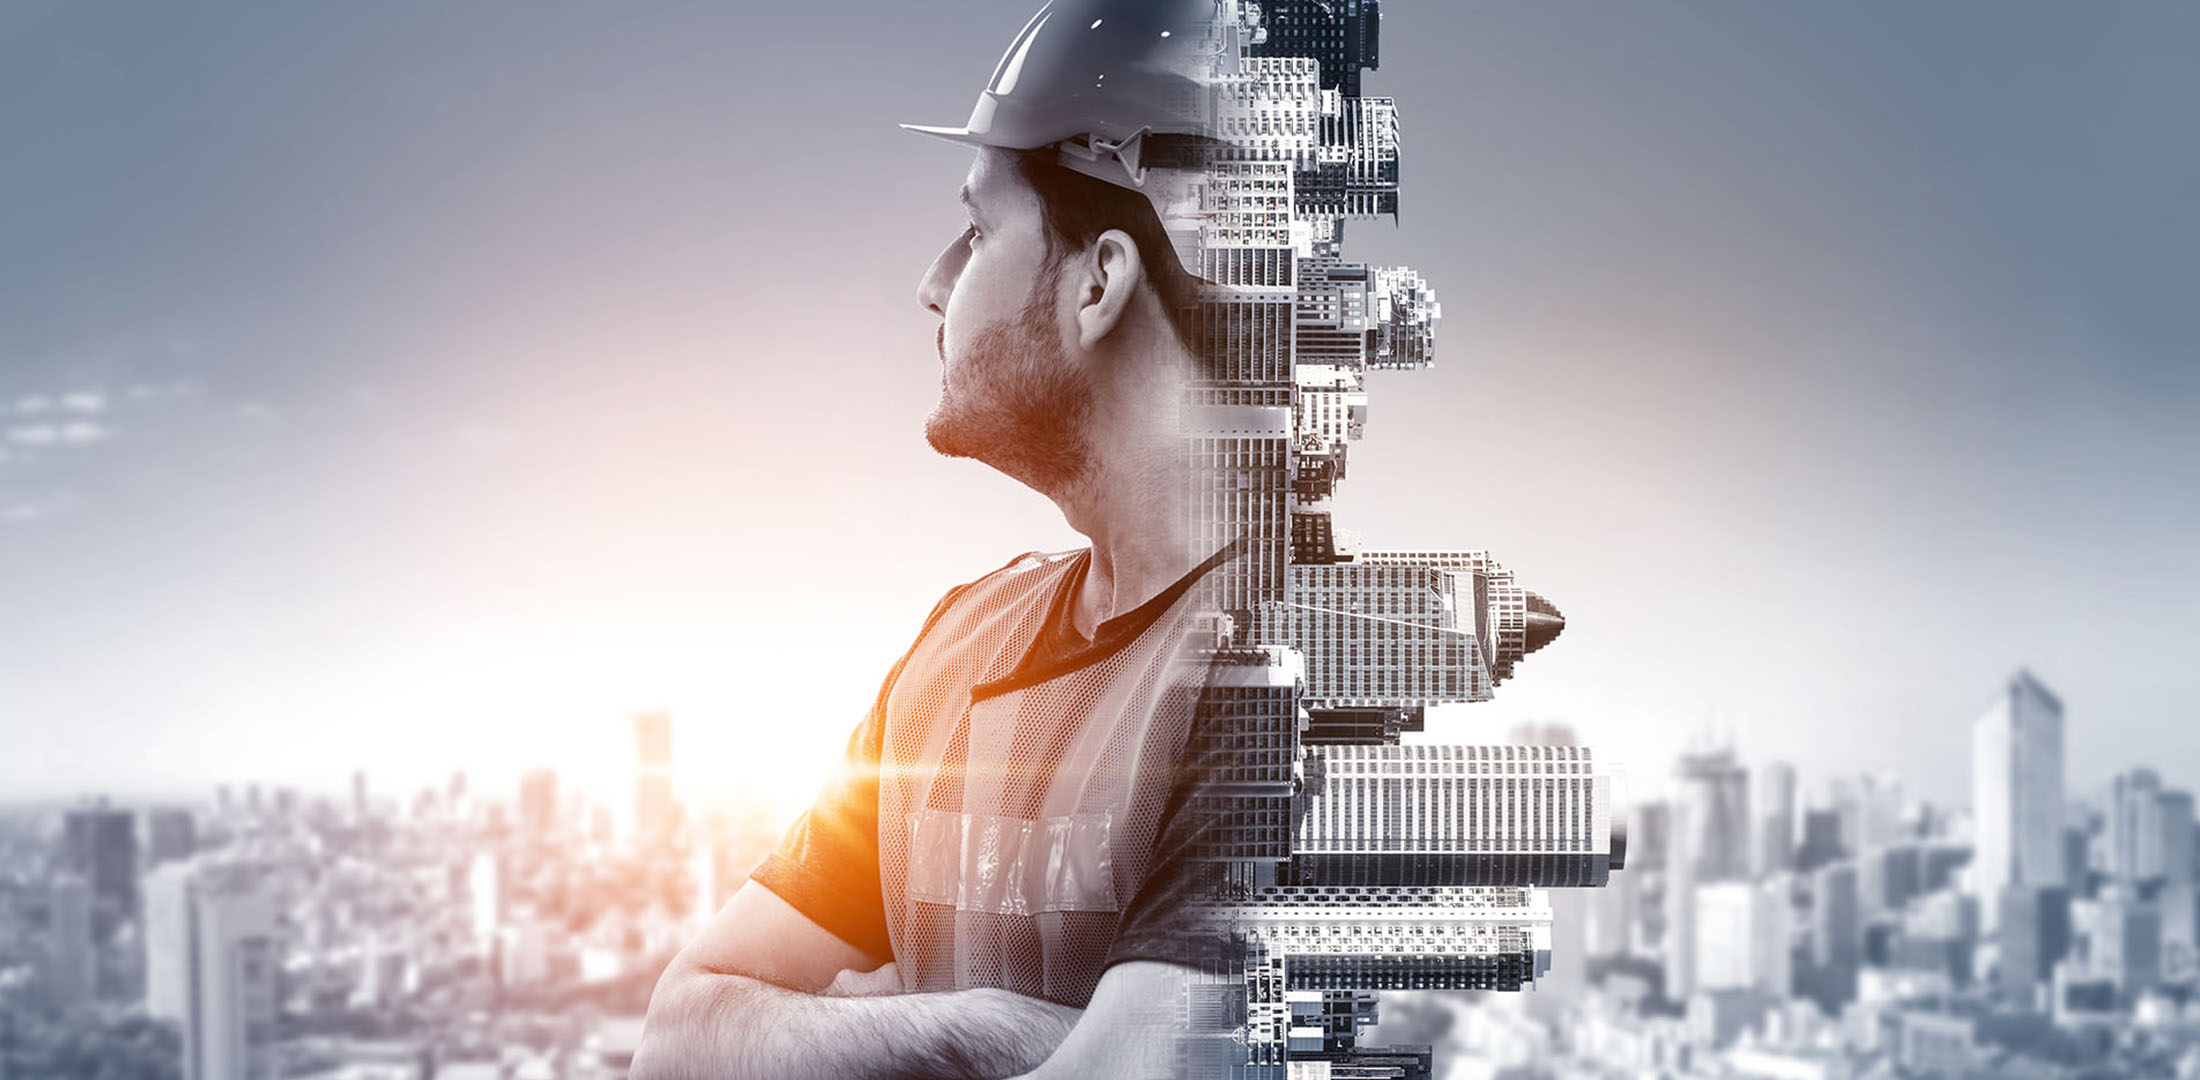 Image of tradesmen looking at city skyline | Featured image CPC60212 Advanced Diploma of Building and Construction.